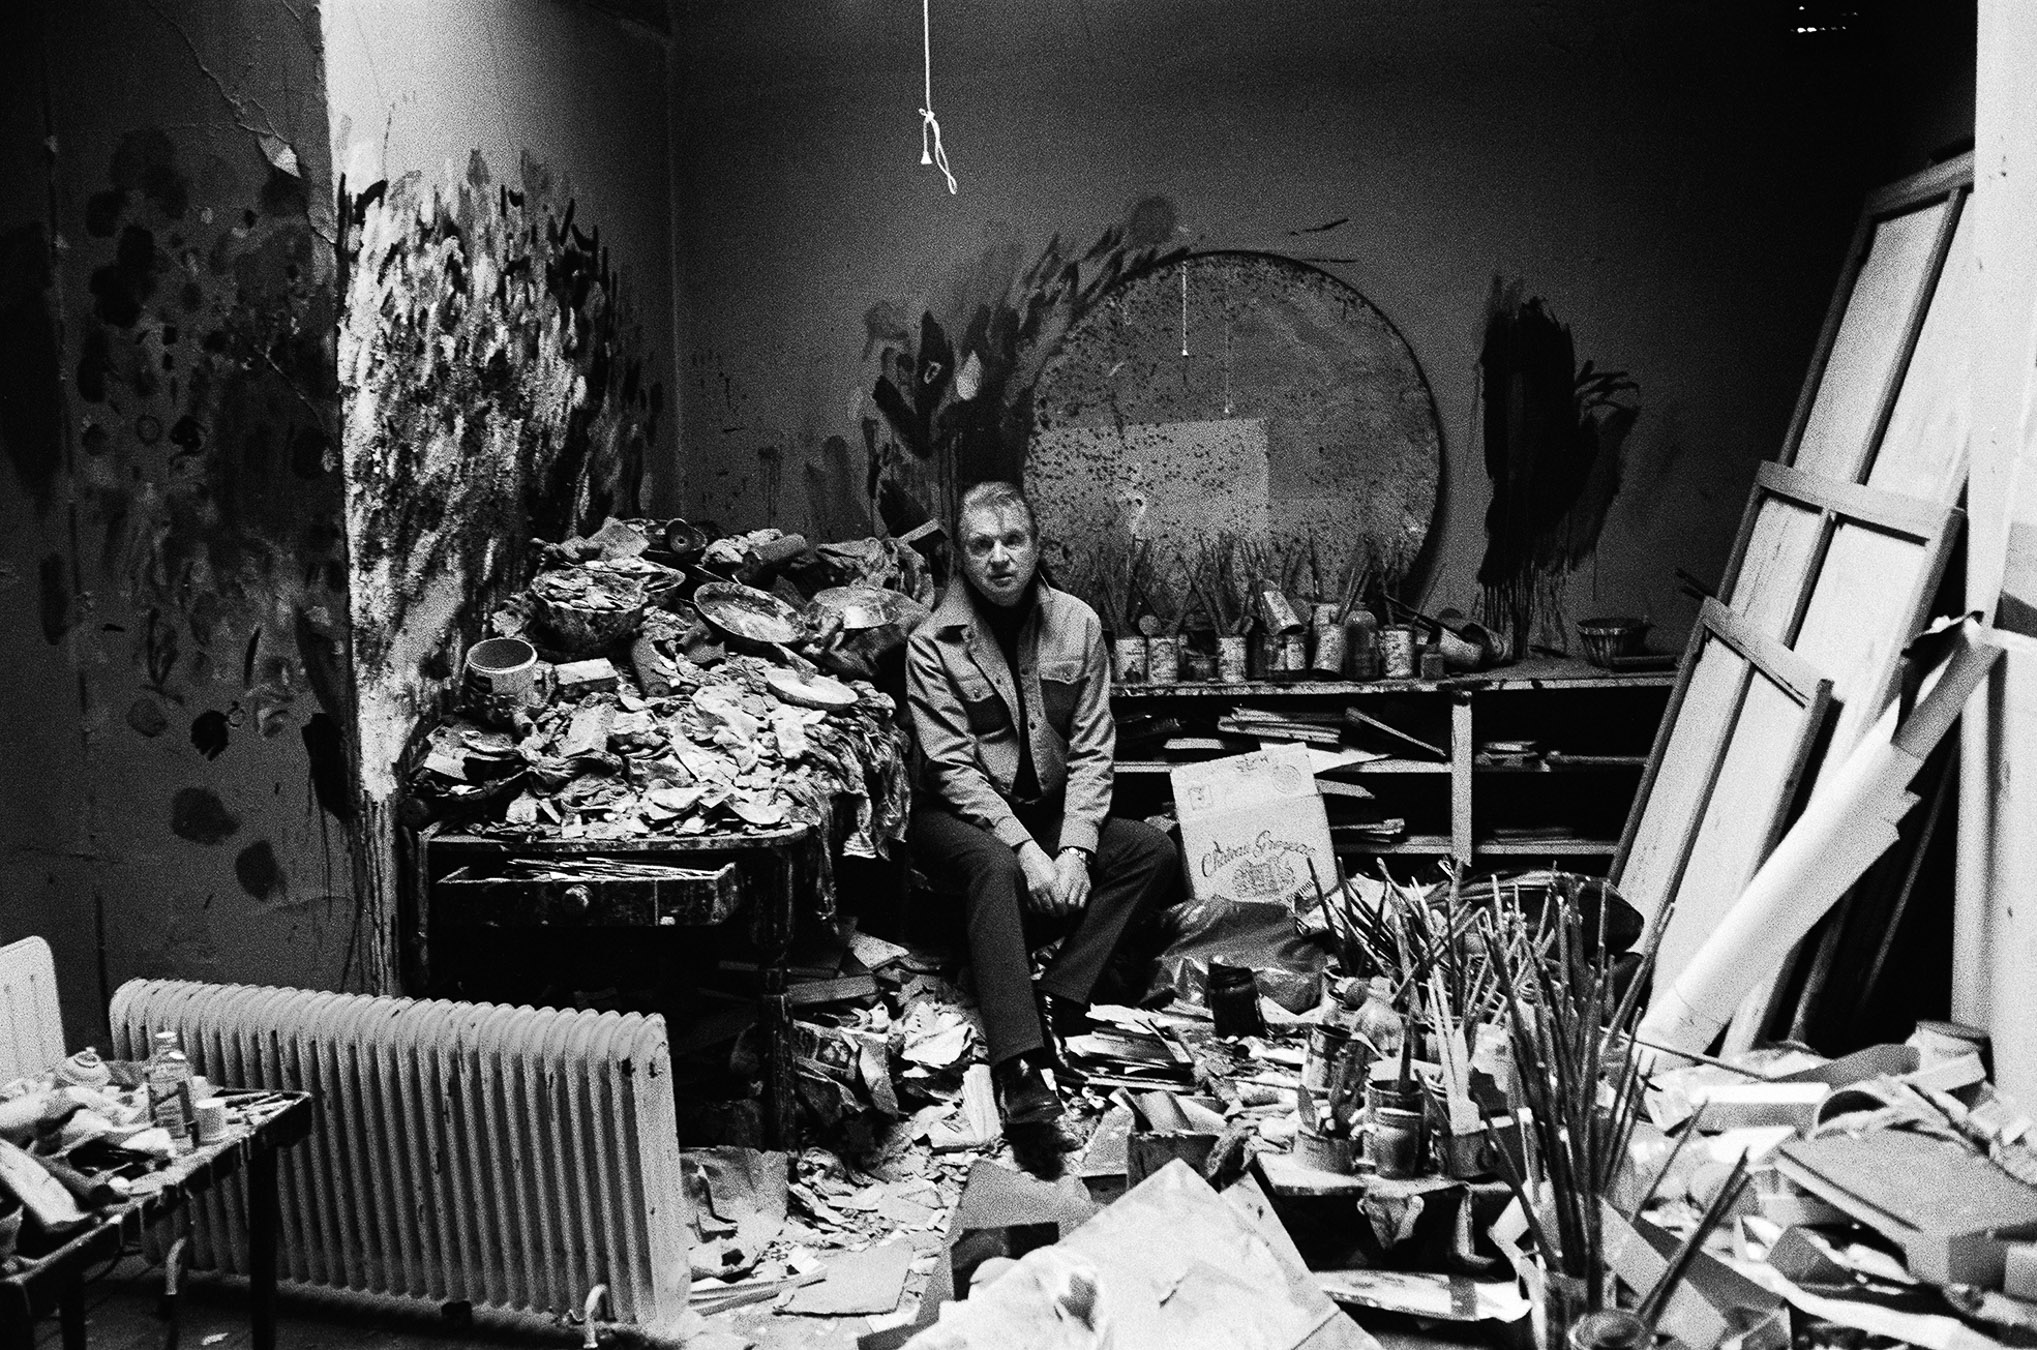 Francis Bacon in his studio, London 1979 (I) Silver gelatin print 98x64cm